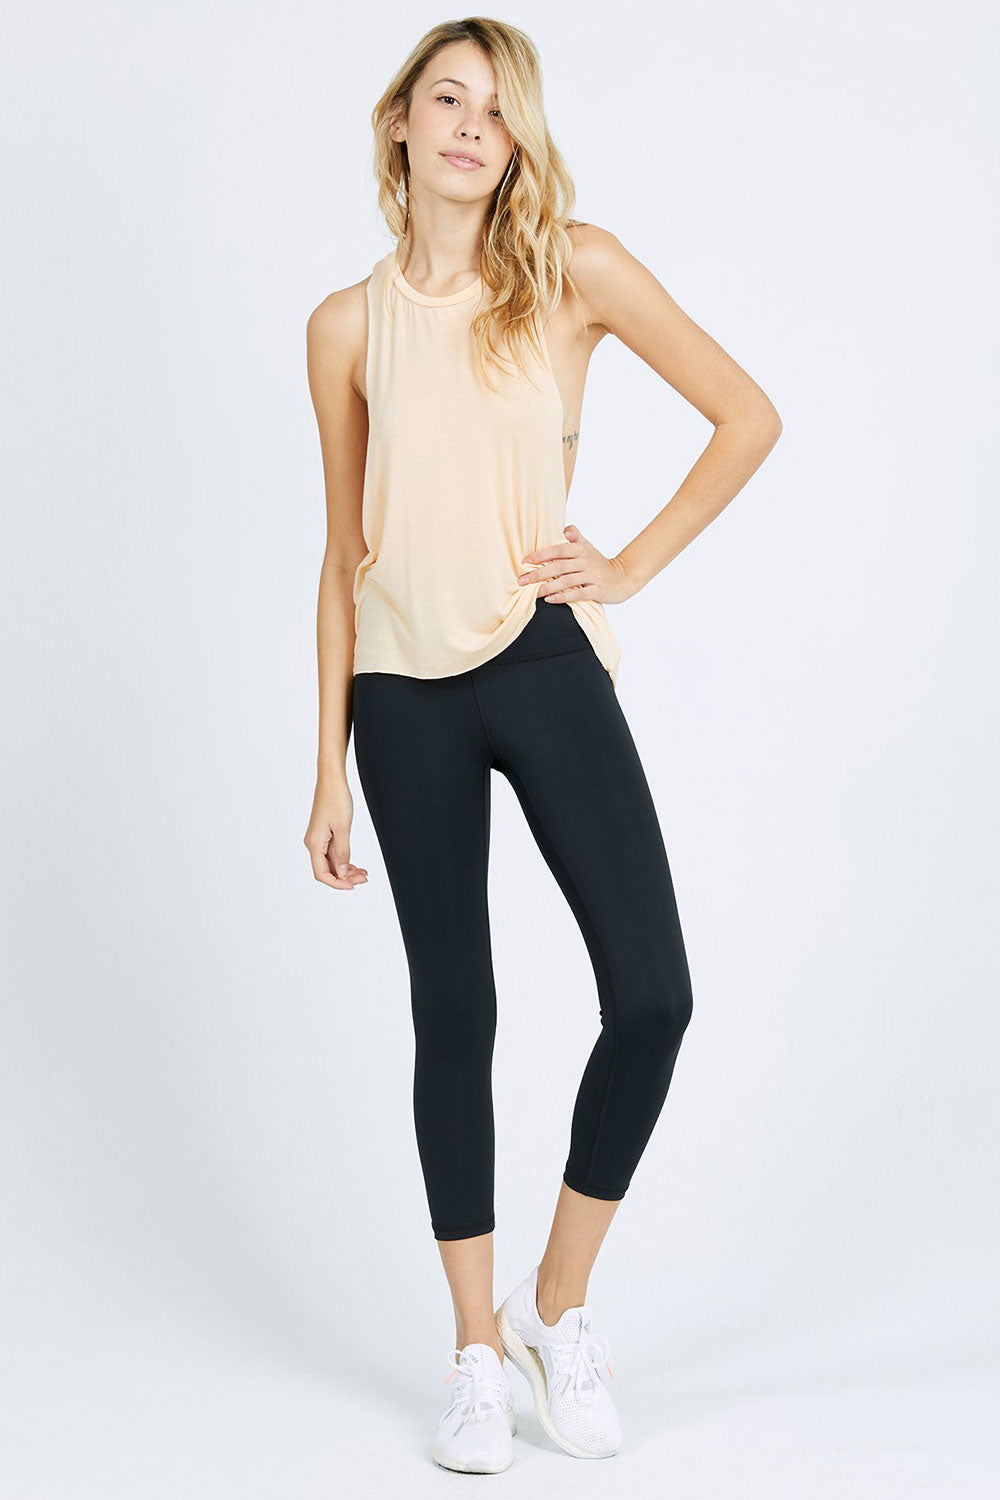 Phases Tank - Apricot